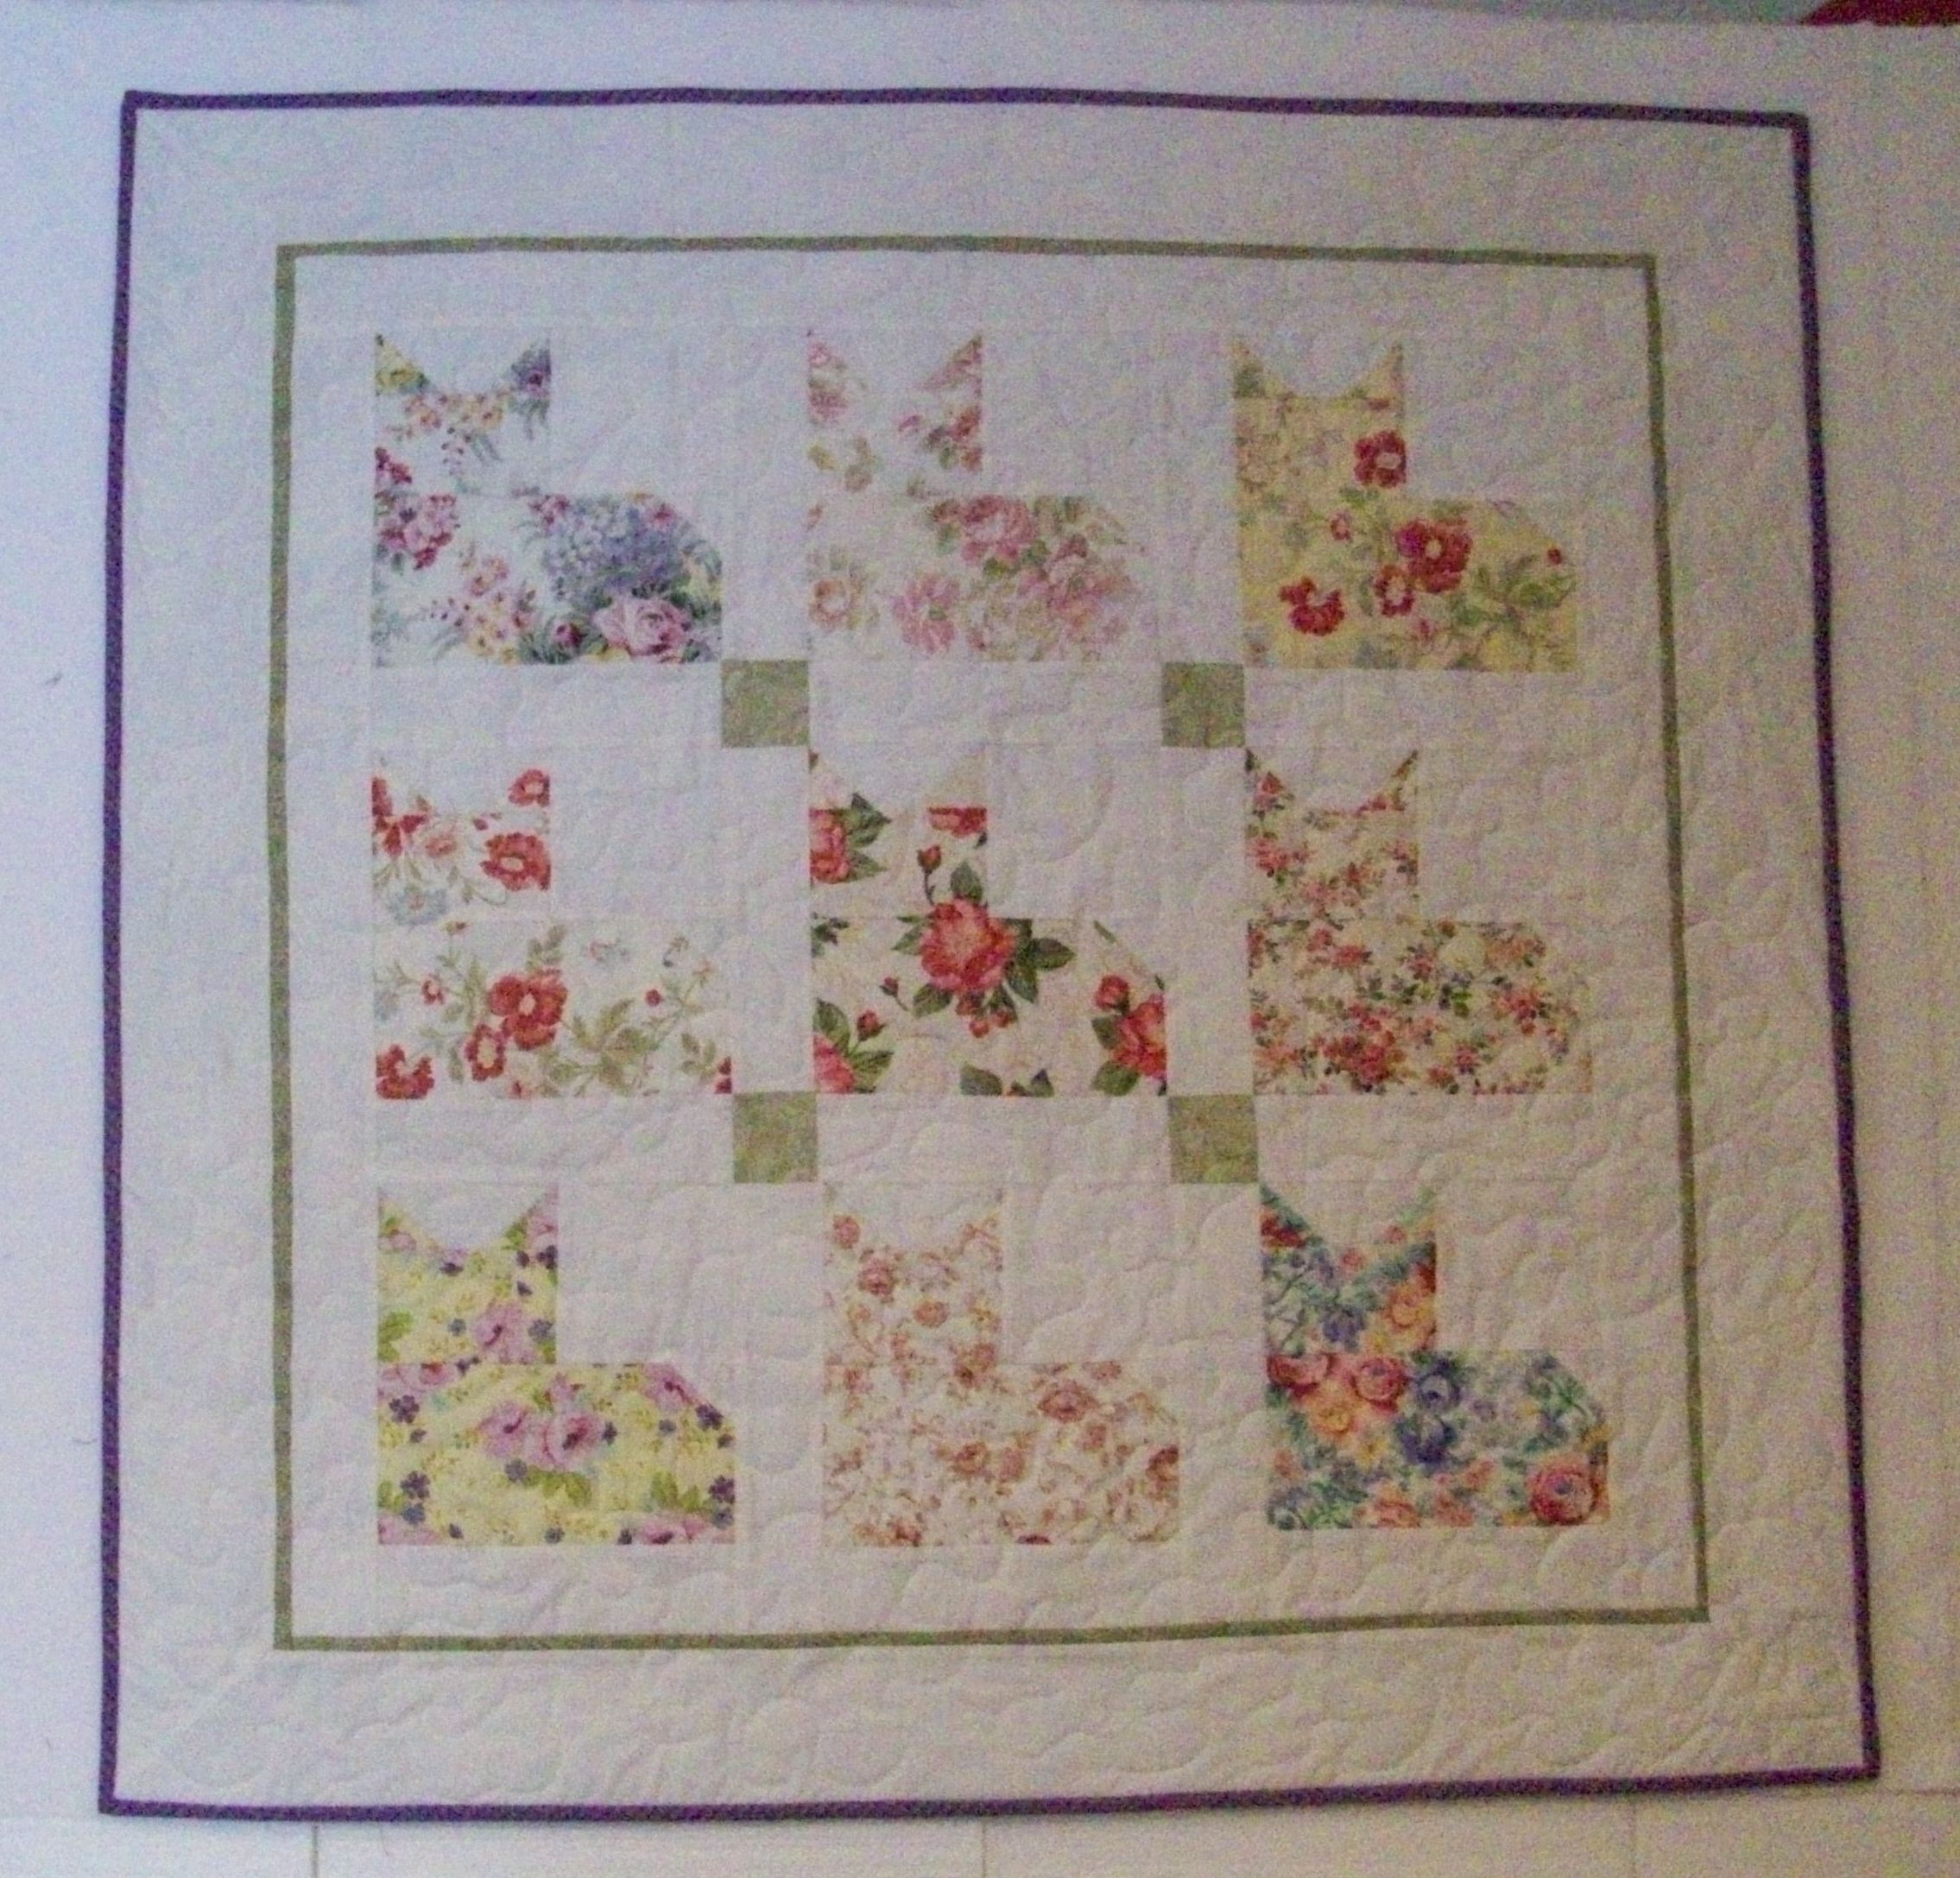 Name:  Cat Quilt Shabby Chic Front.jpg Views: 3737 Size:  692.2 KB